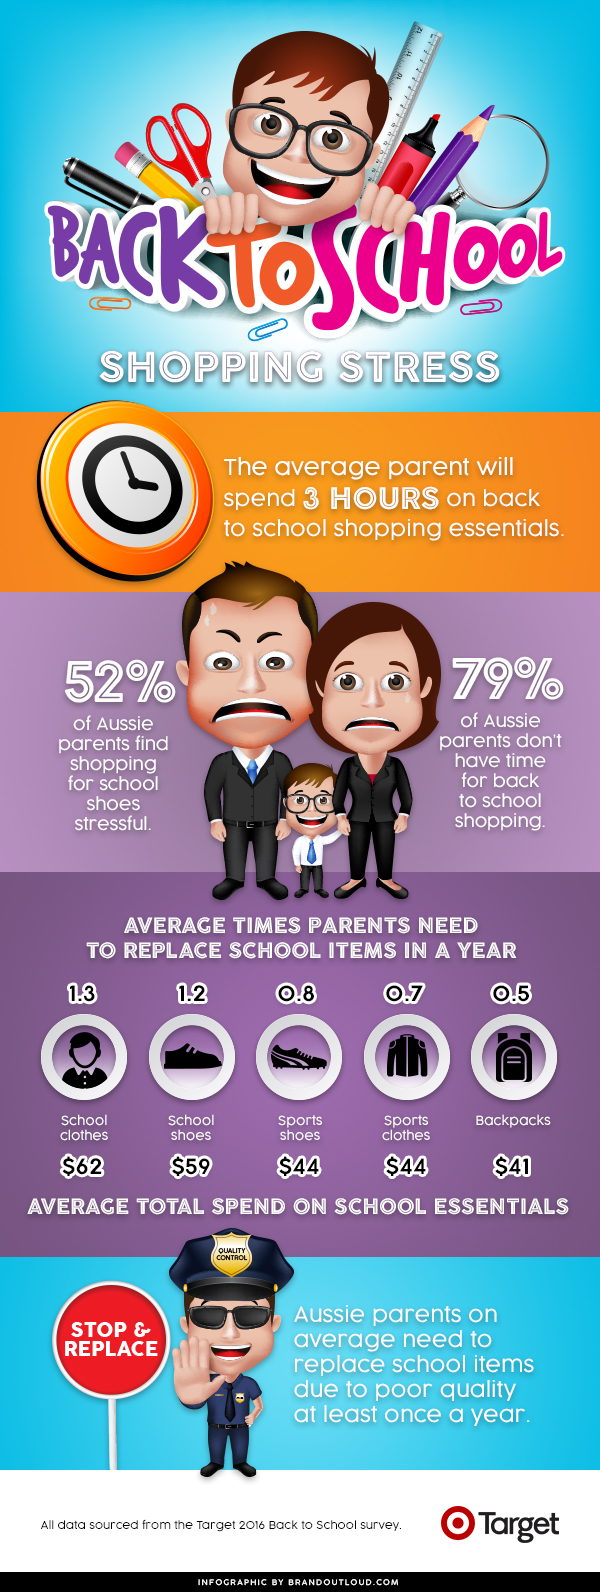 Target Back to School infographic by Brandoutloud